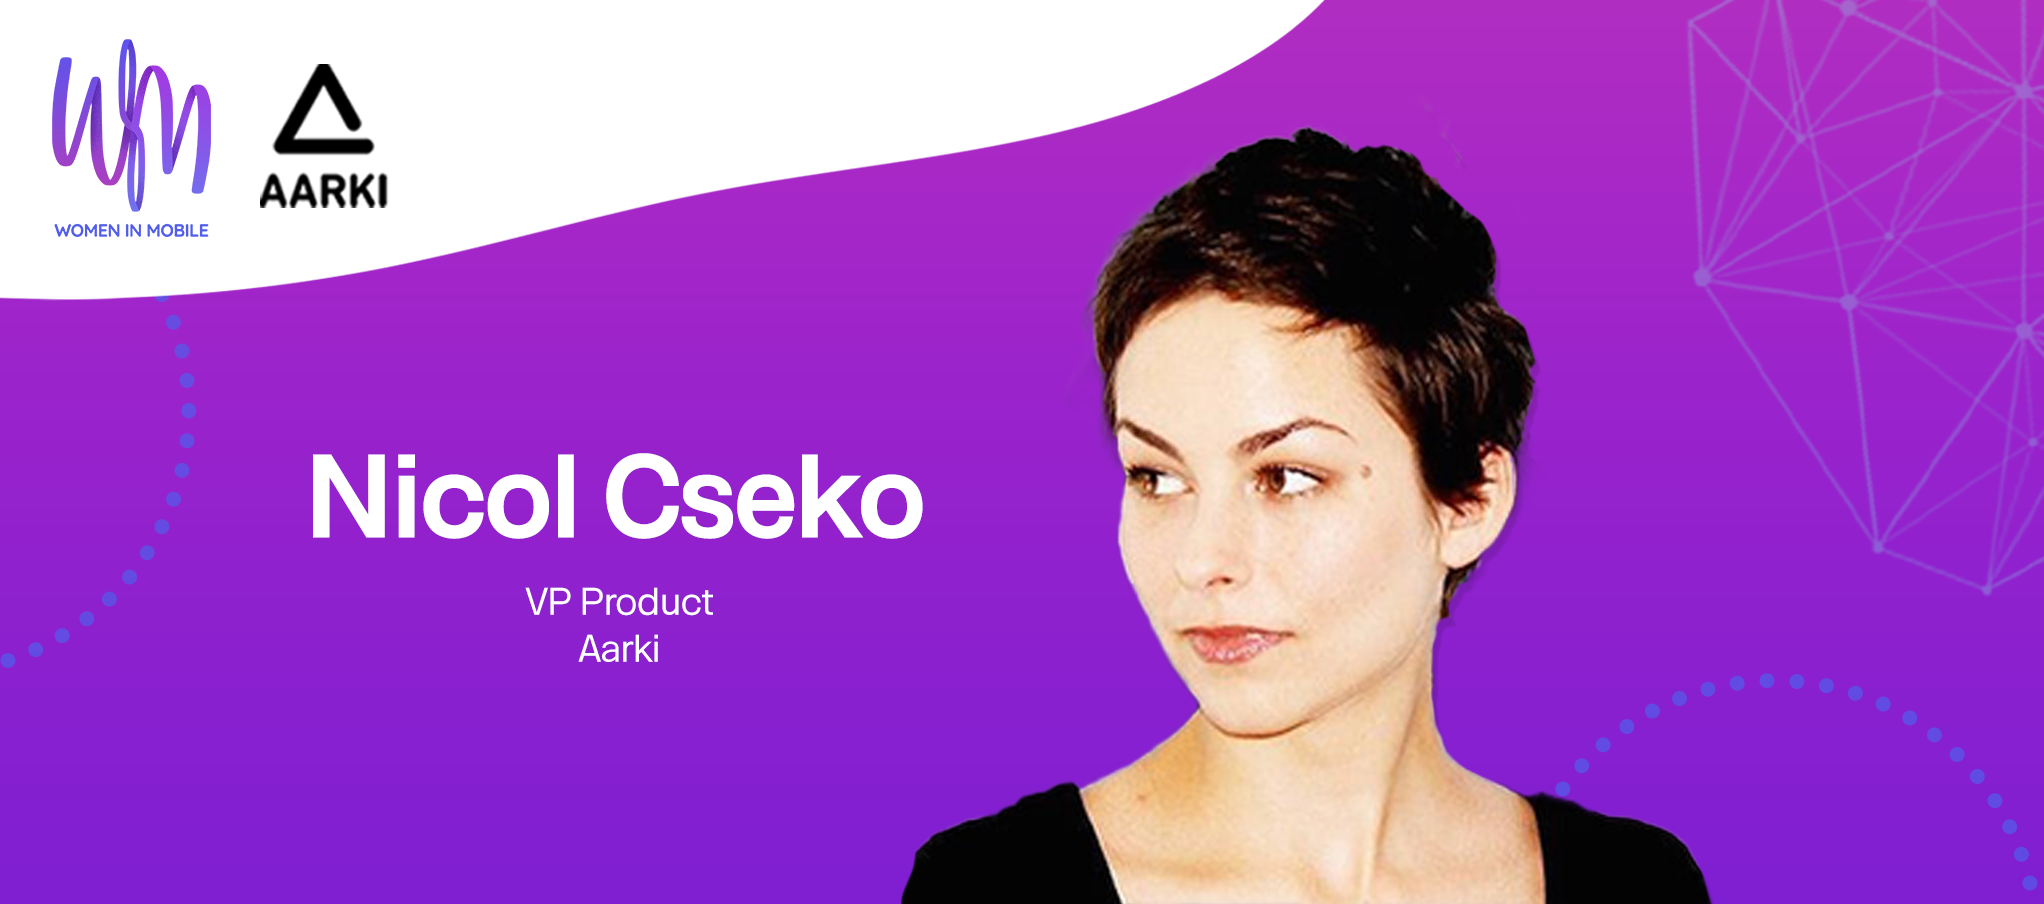 Nicol Cseko, VP Product at Aarki